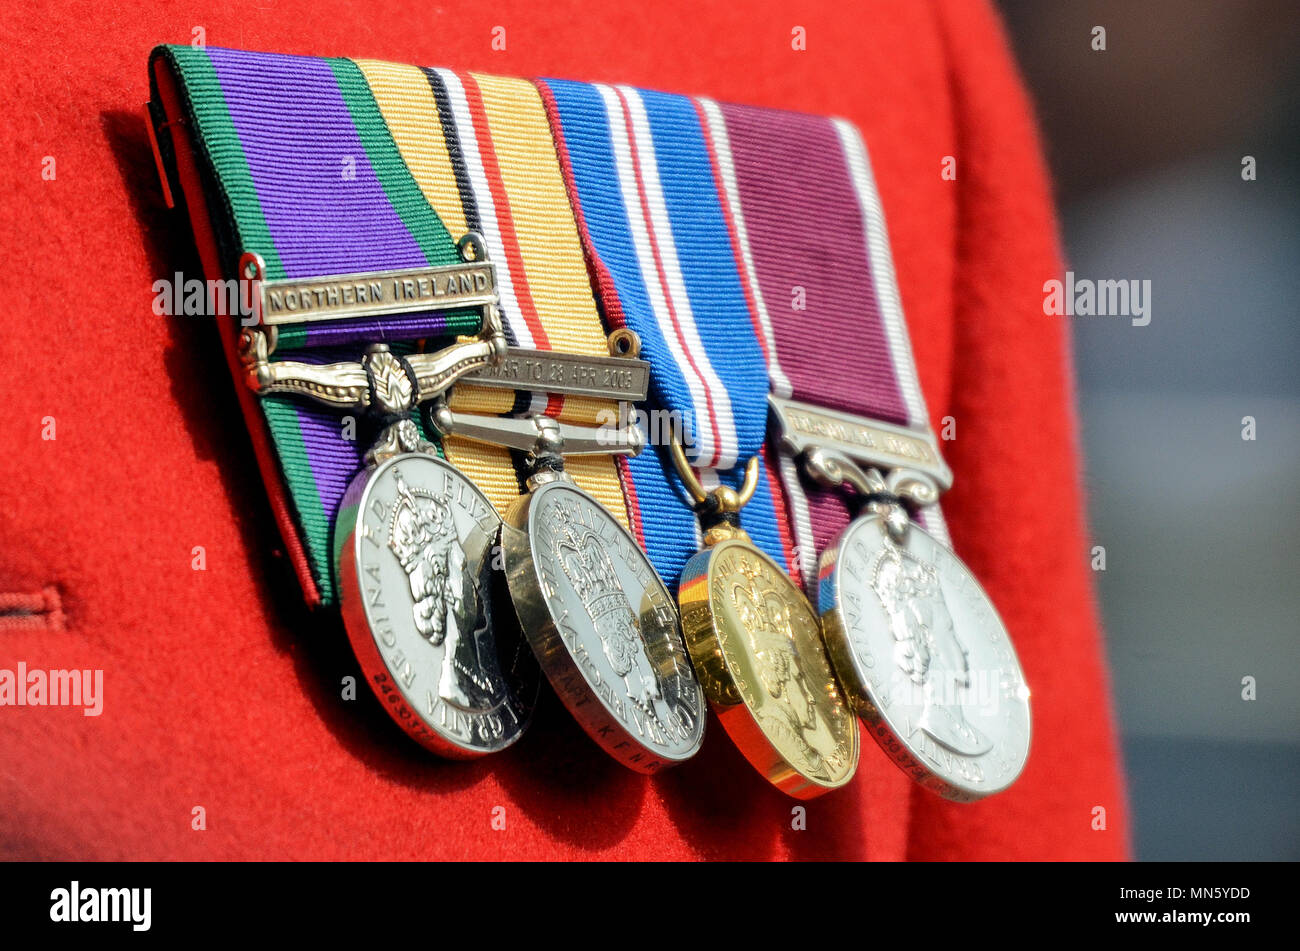 medals-on-a-soldiers-uniform-including-serving-in-northern-ireland-iraq-medal-2003-golden-jubilee-medal-long-service-and-good-conduct-lsgc-medal-MN5YDD.jpg